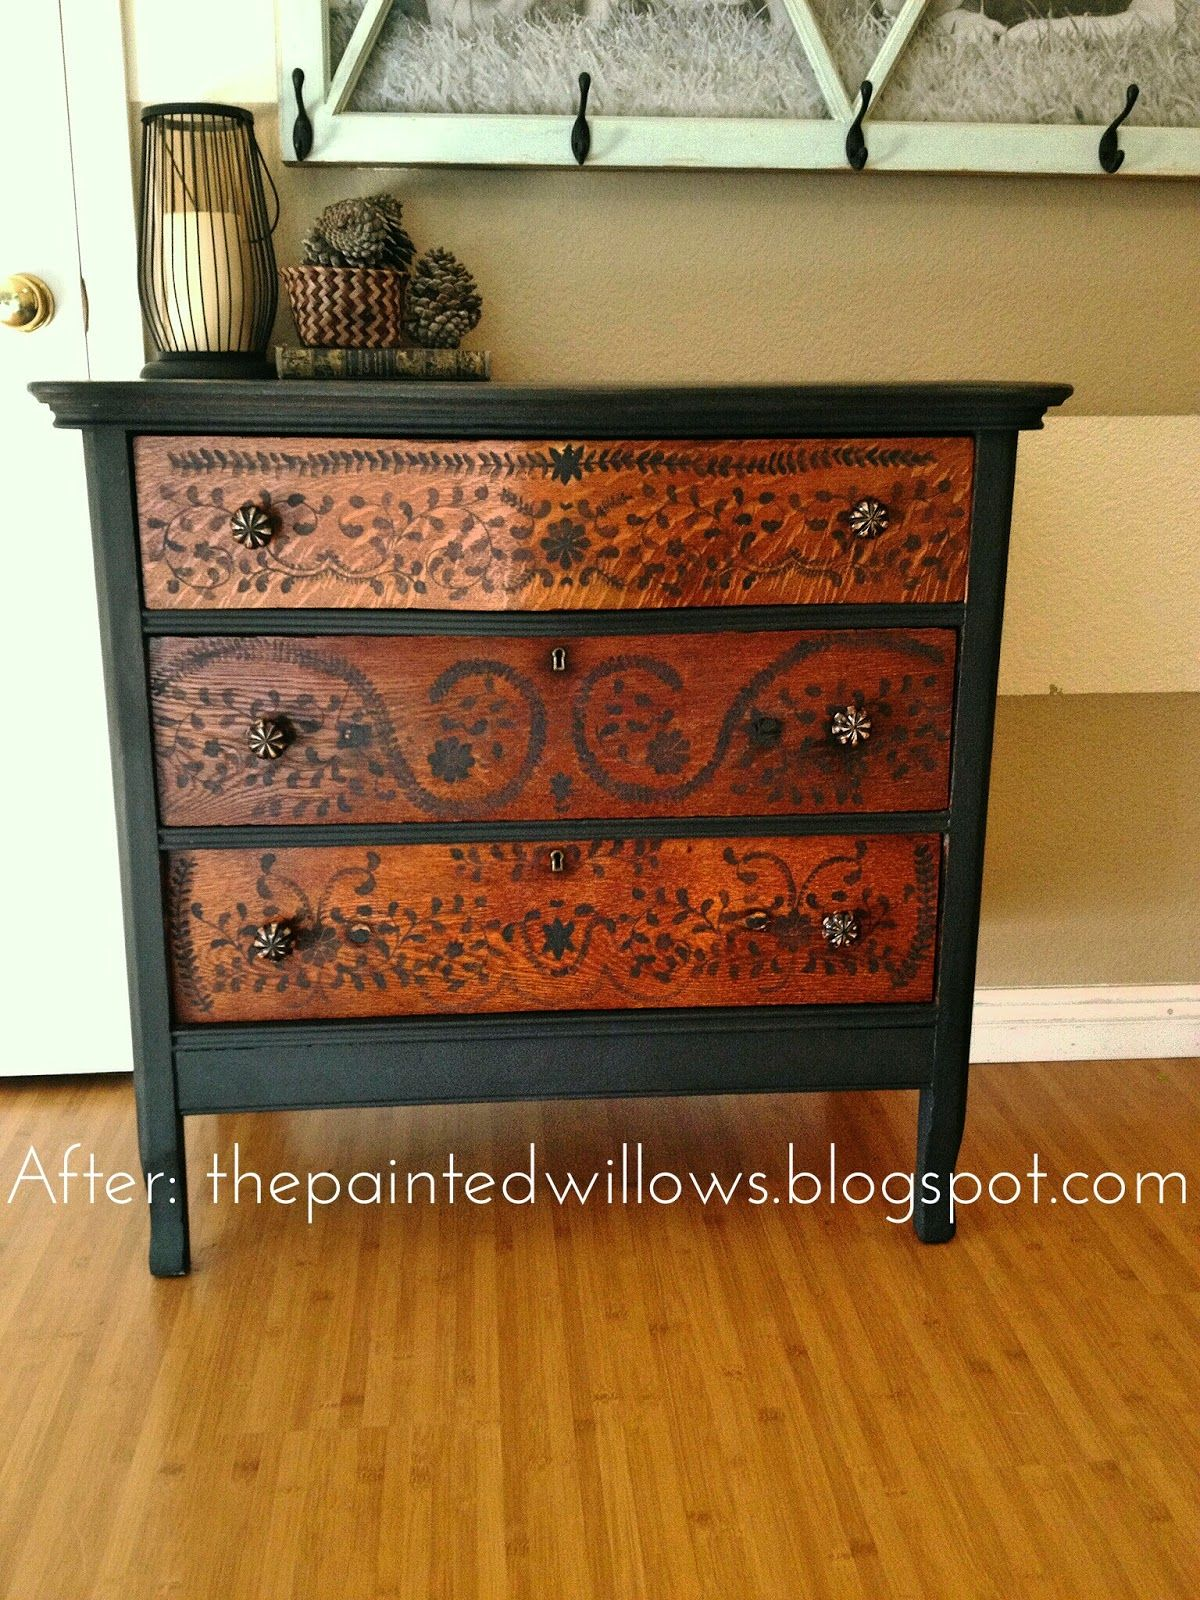 Attrayant Furniture Gallery: Tons Of Before And After DIY Furniture Redo Ideas  Including This Miss Mustard Seed Inspired Antique Dresser Painted Black